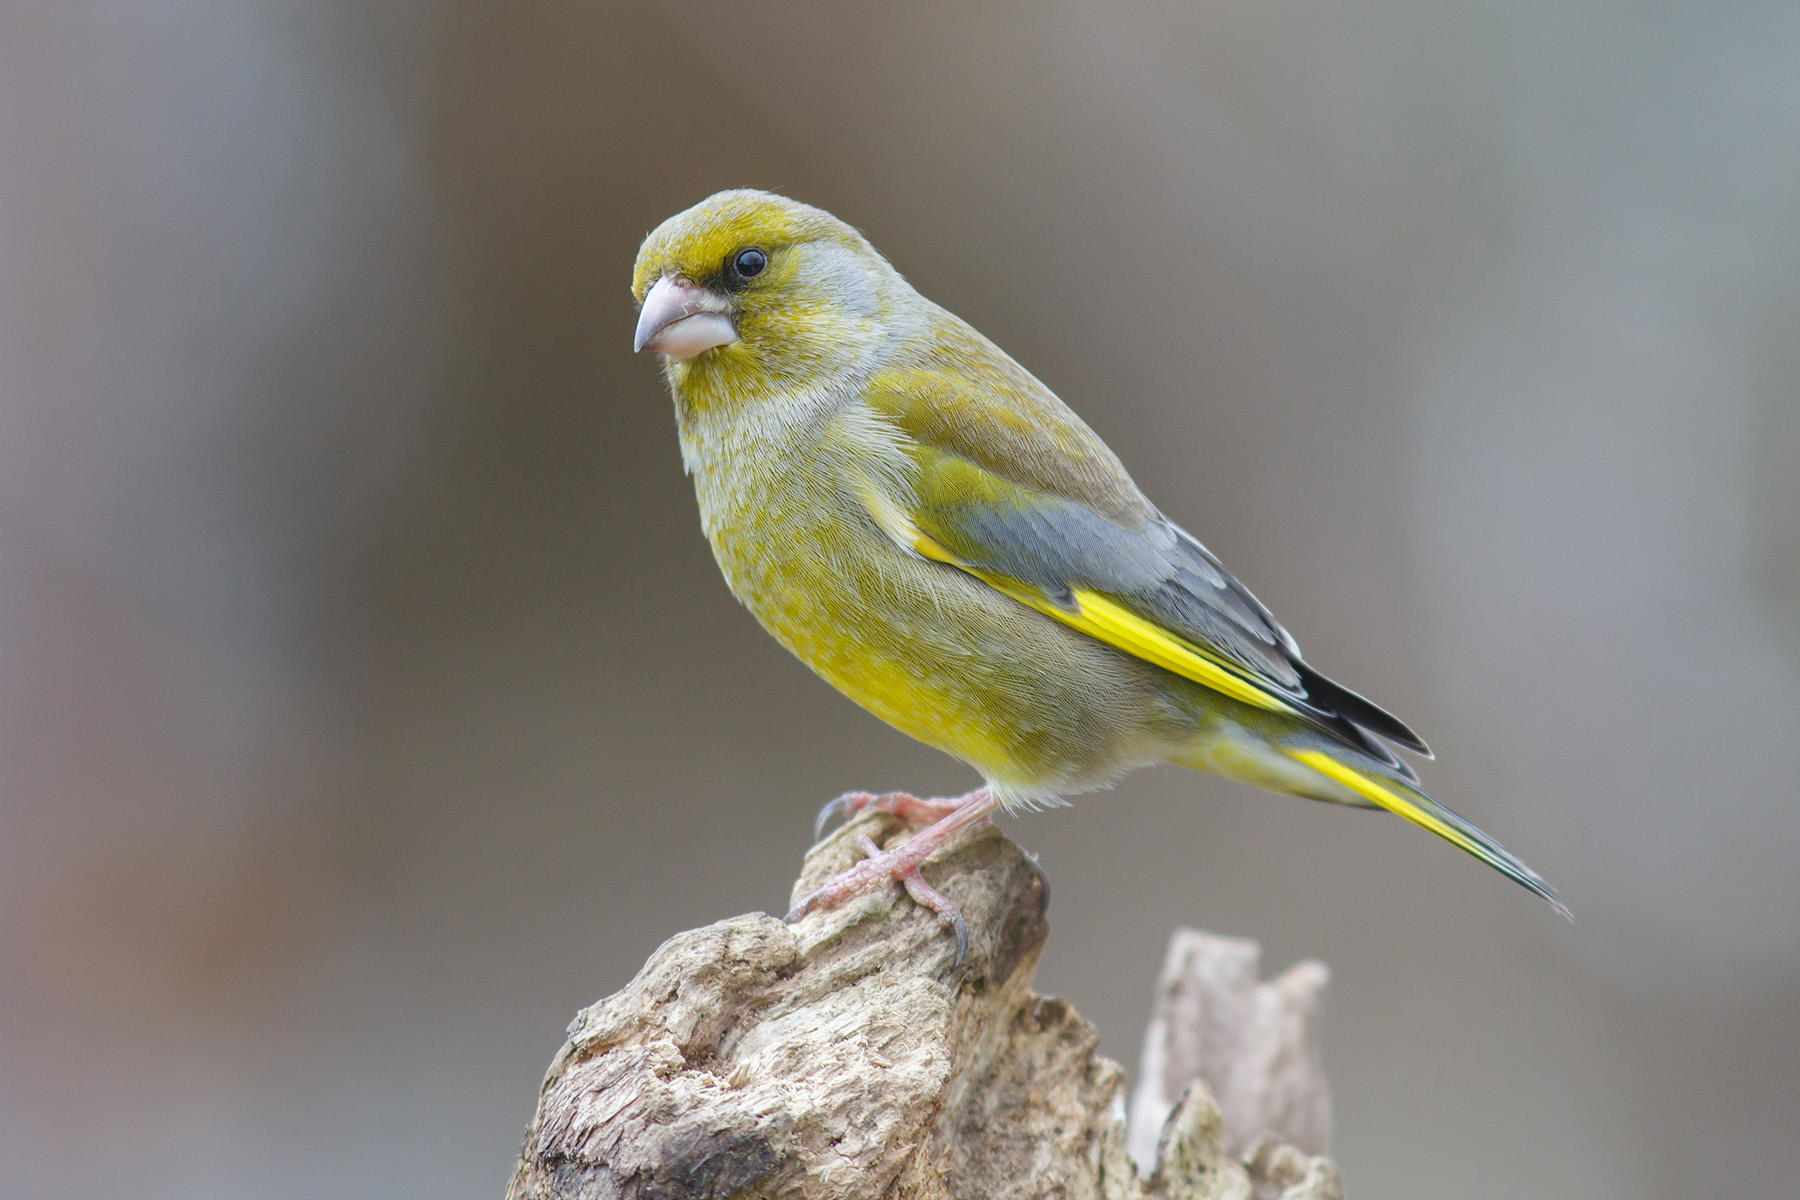 Image: A greenfinch which is susceptible to the parasite Trichomonas gallinae